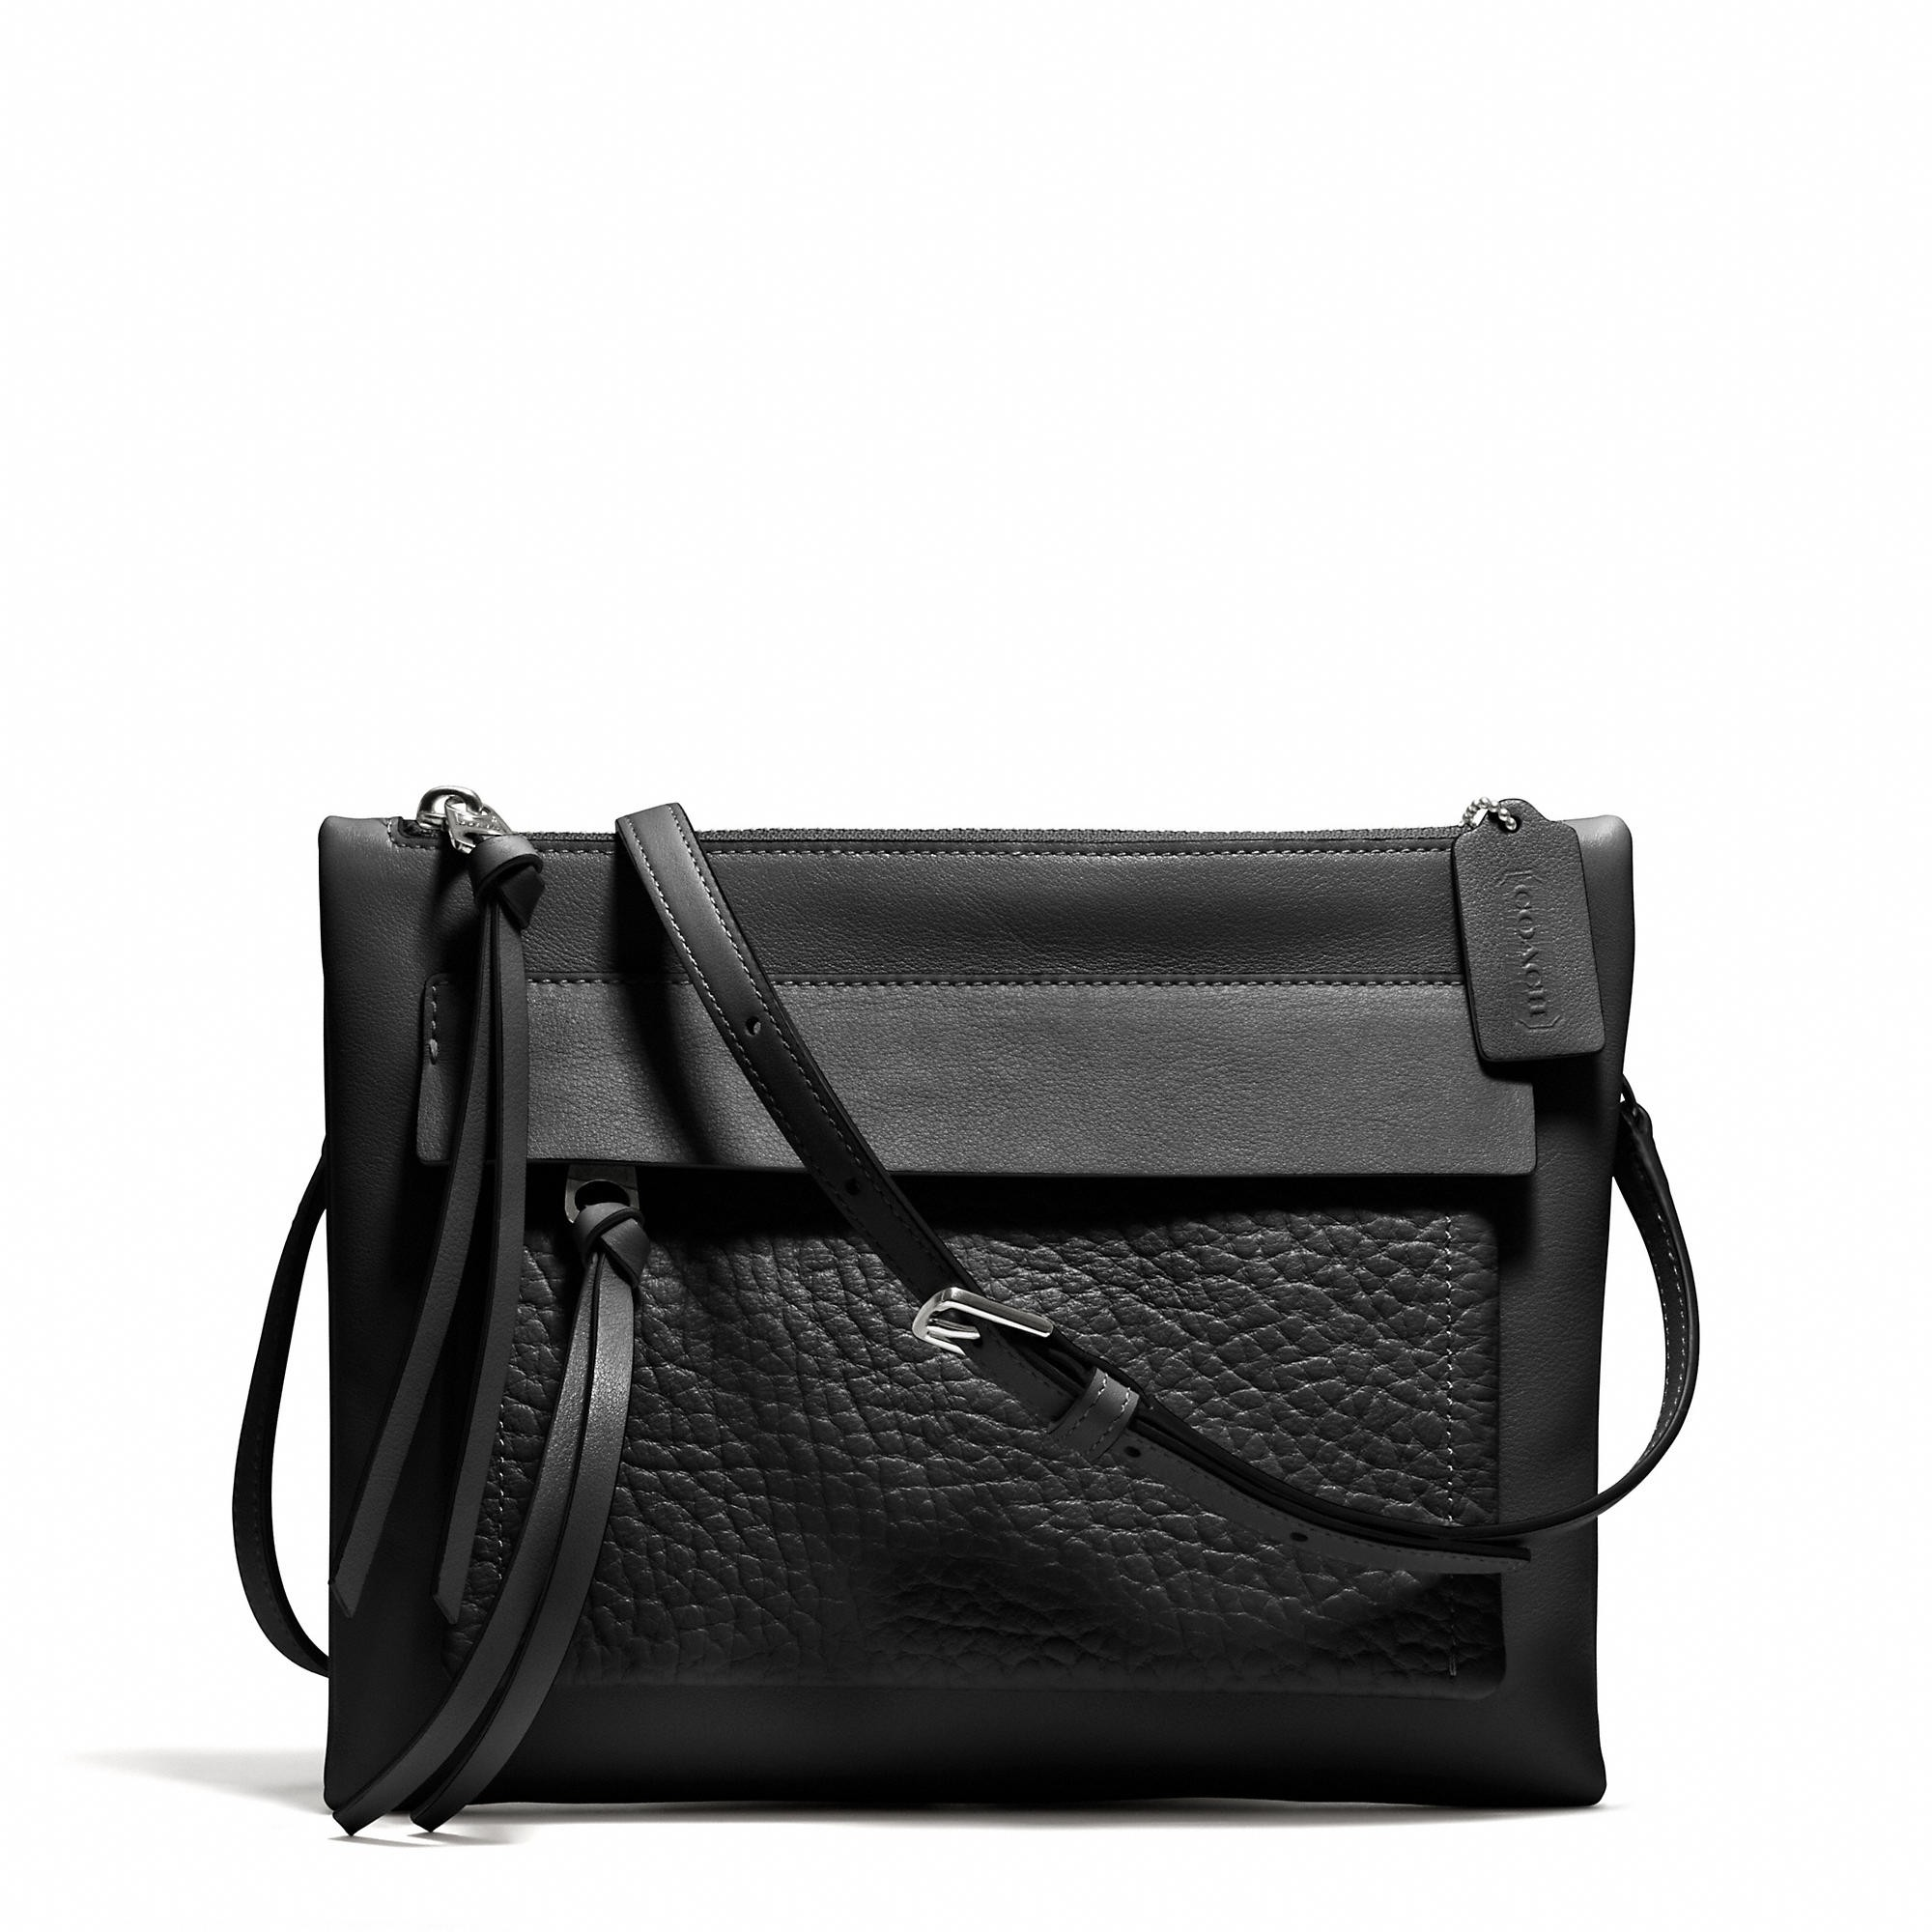 BLEECKER FELICIA CROSSBODY IN LEATHER